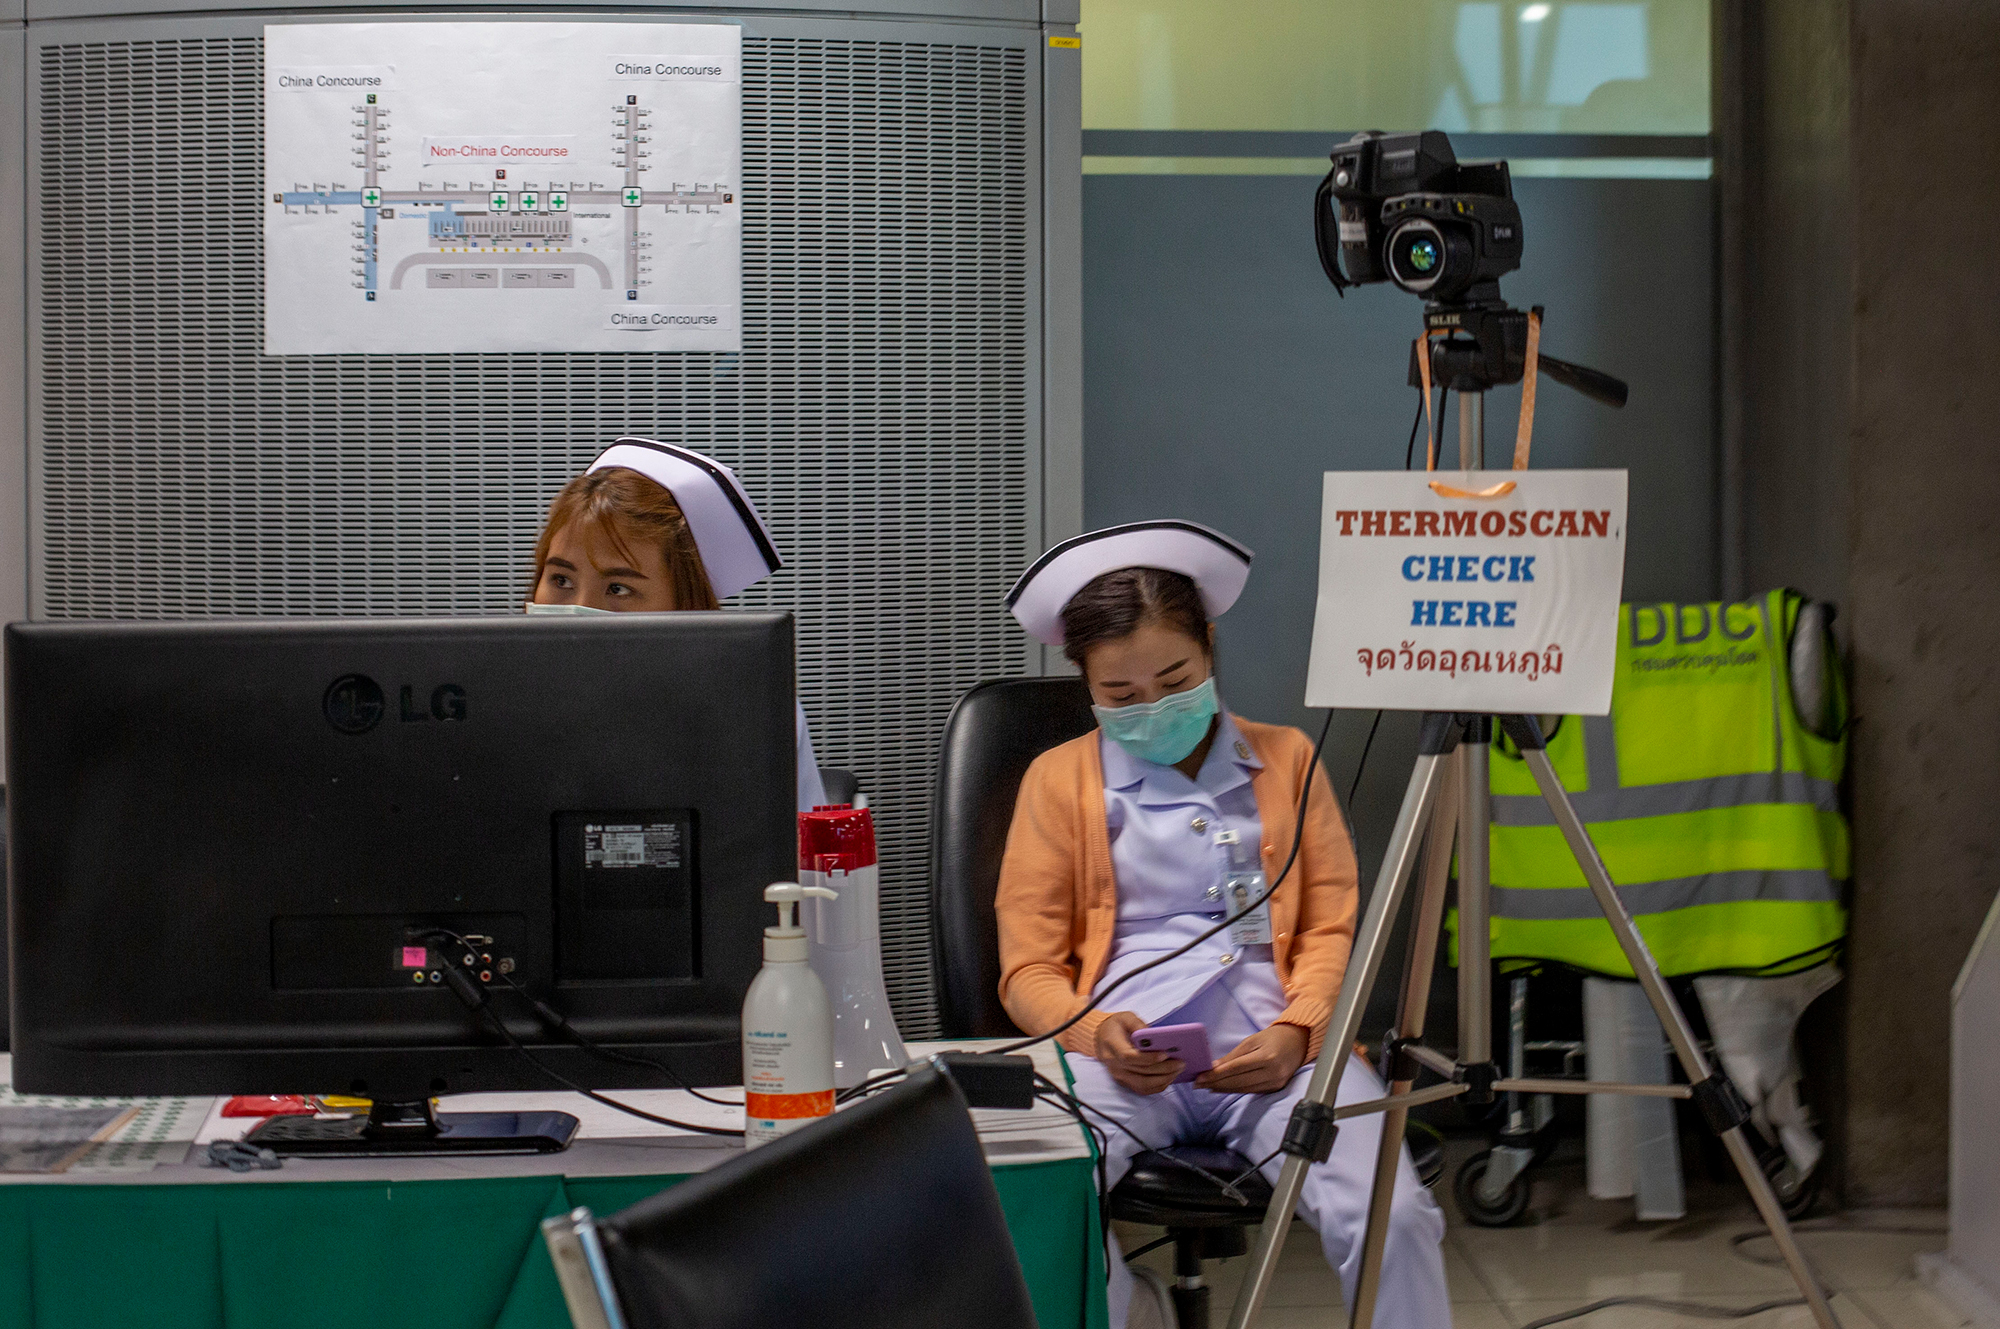 Thai public health officers operate a health checkpoint with a thermo scan at Suvarnabhumi International airport in Bangkok.